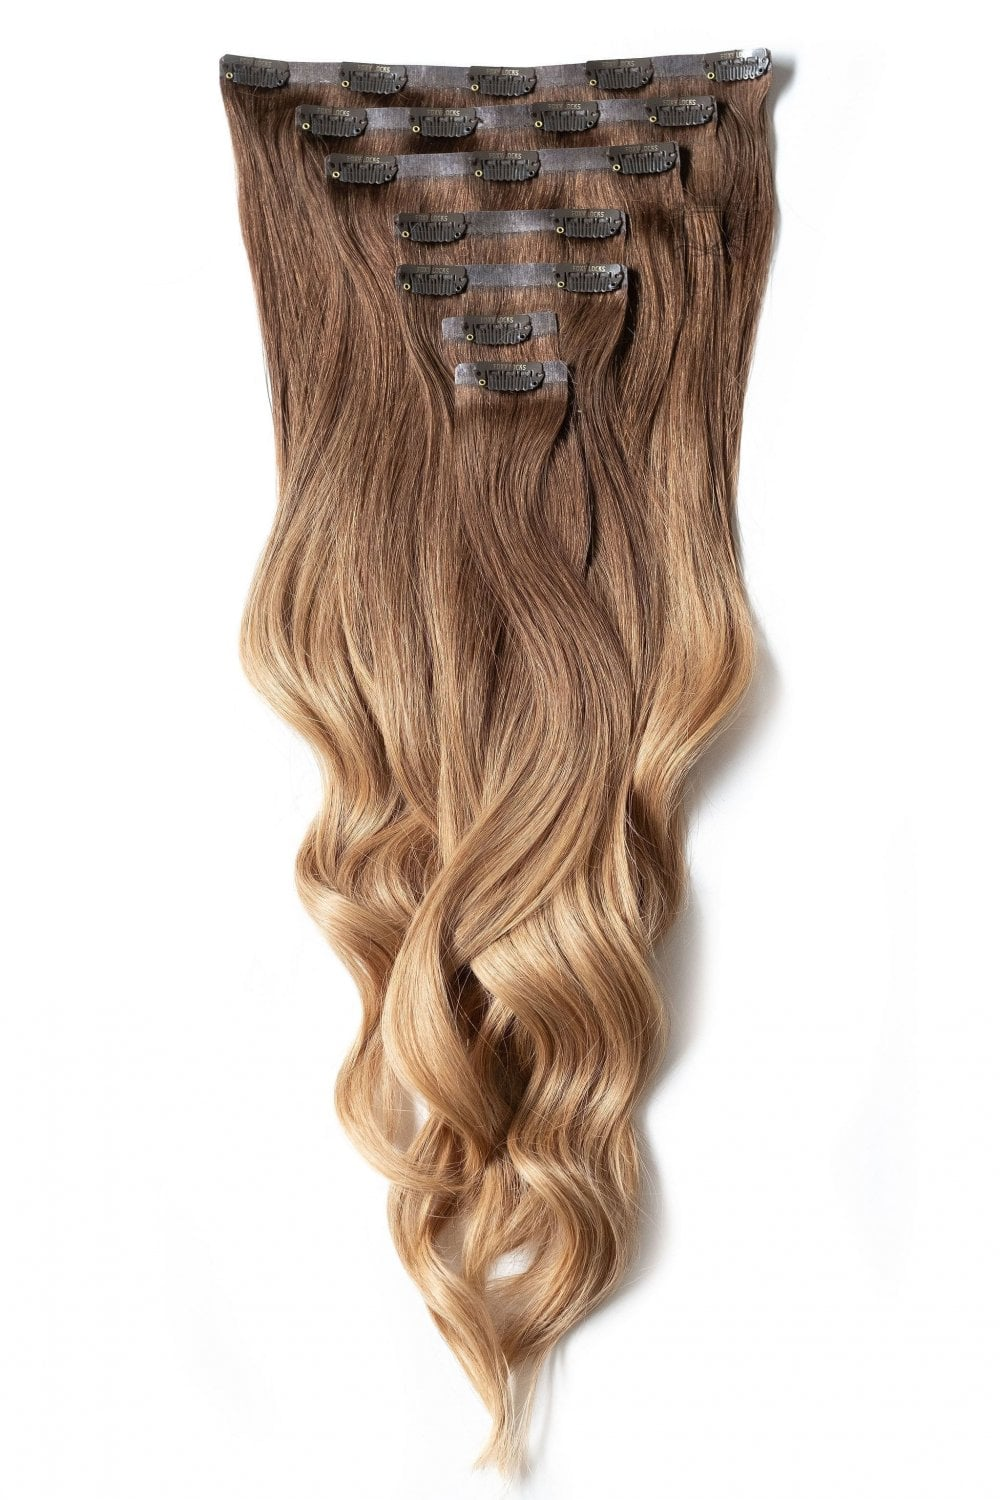 Mocha toffee ombre regular seamless 18 clip in human hair mocha toffee ombre regular seamless 18 clip in human hair extensions pmusecretfo Gallery